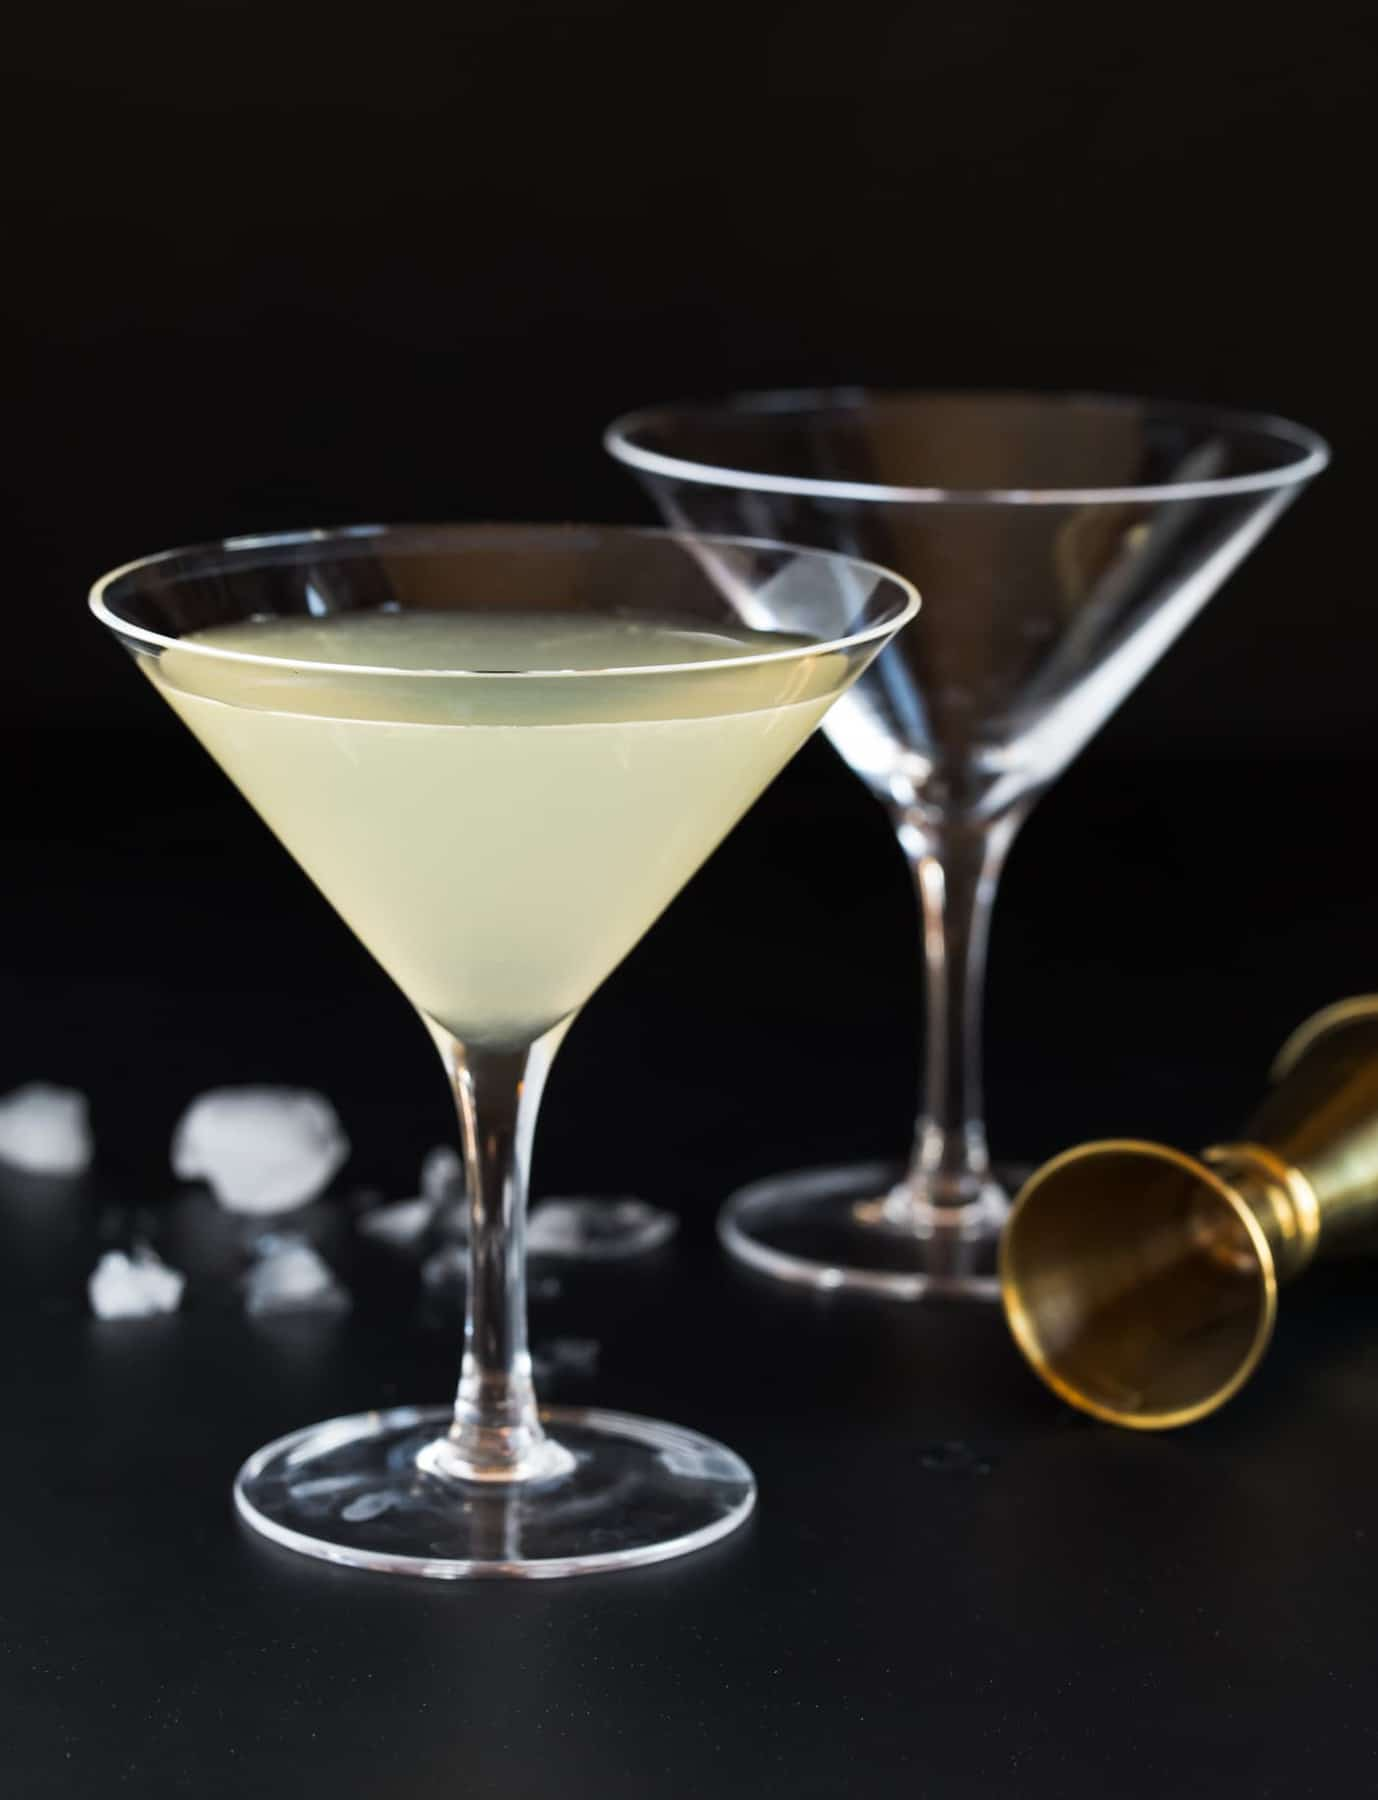 Two martini glasses and a gold jigger on black background. One martini glass is filled with an Elderflower Martini.